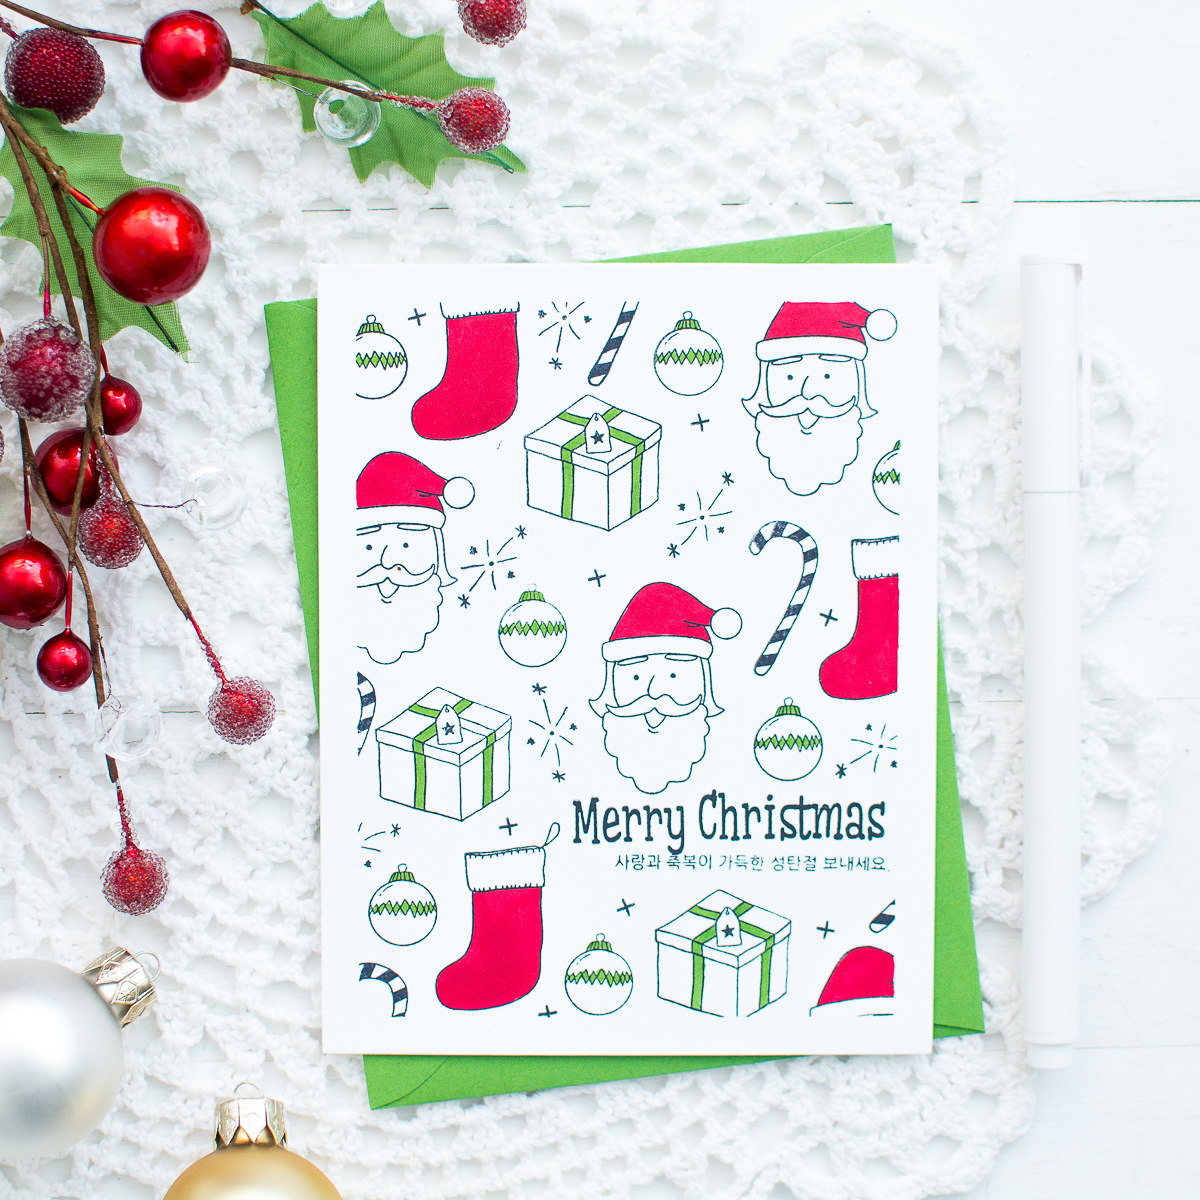 16 DIY Christmas Card Ideas for Friends and Family - Mayholic Design